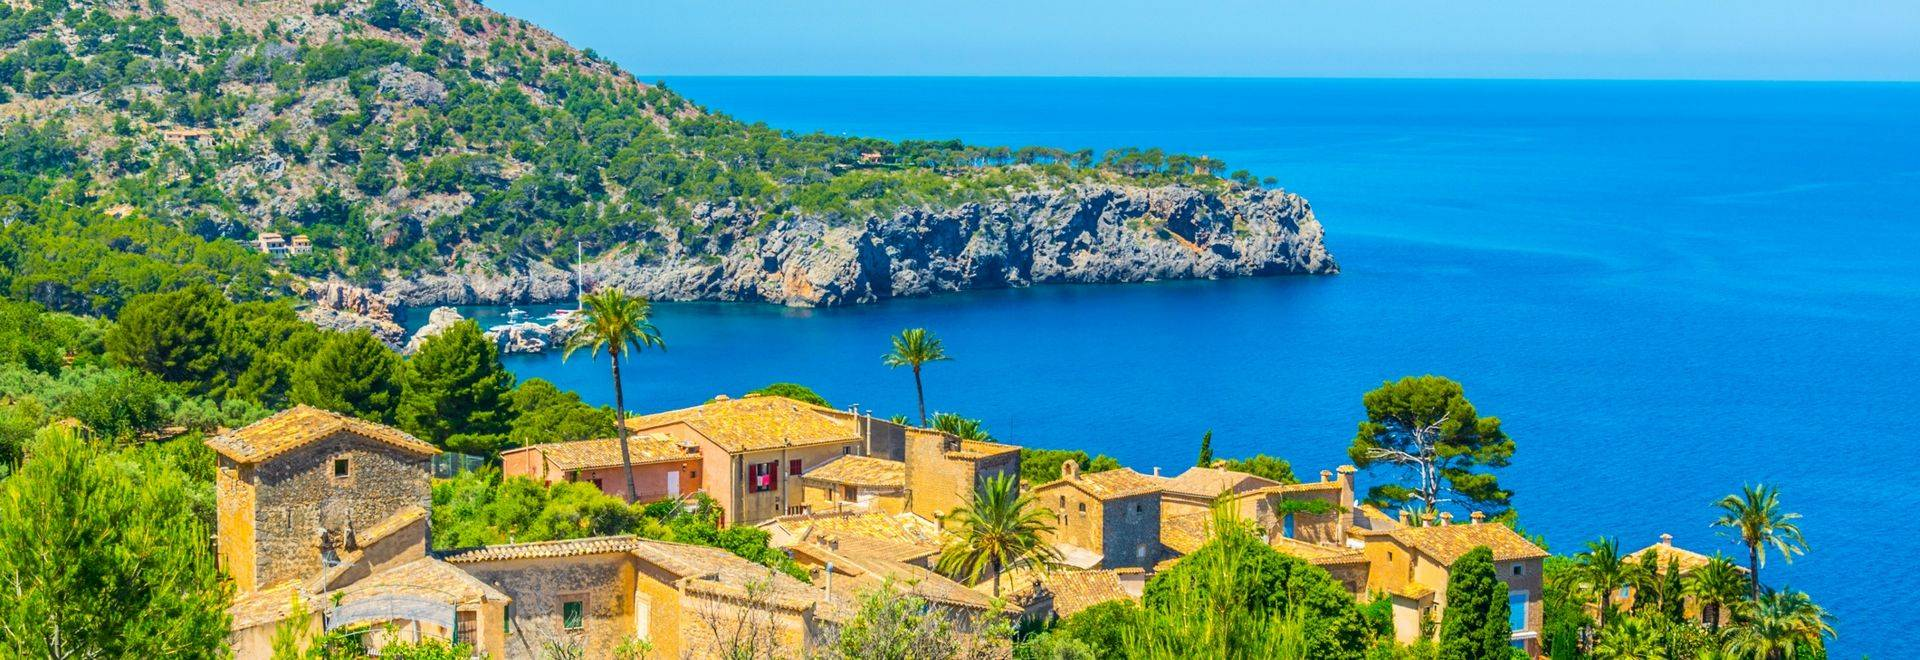 Aerial view of Llucalcari, Mallorca, Spain